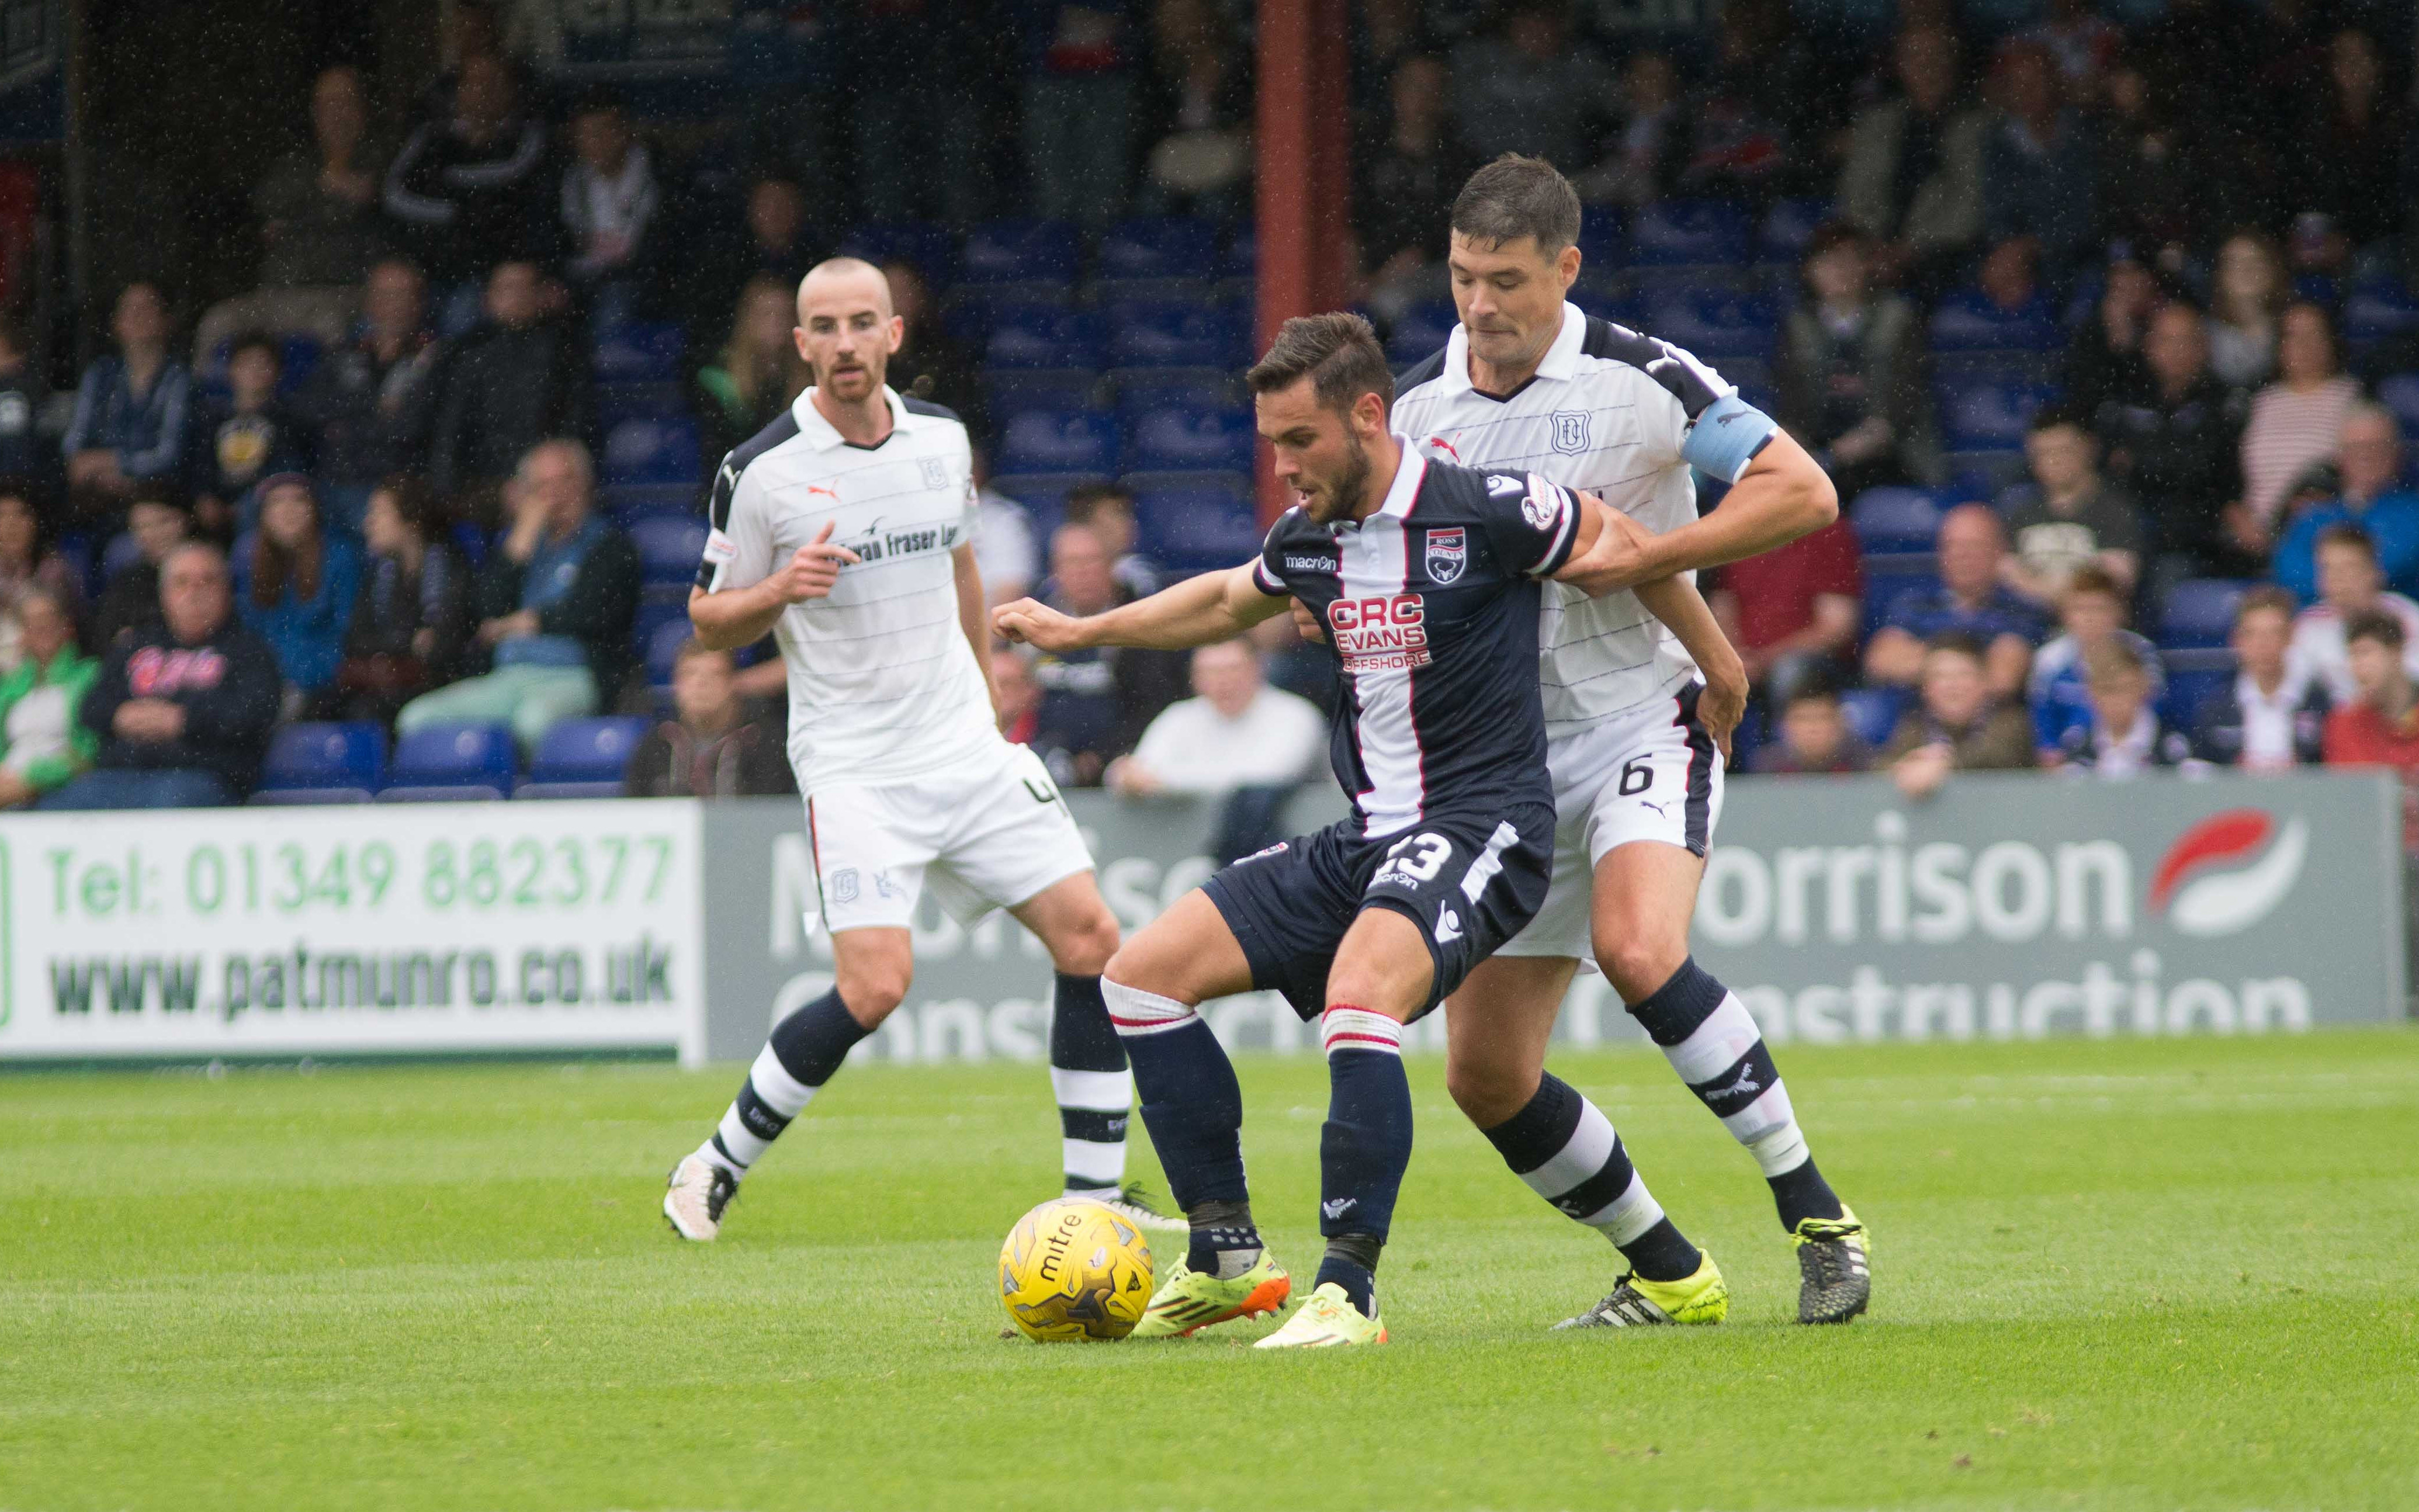 [Image: 06-08-2016-Ross-County-v-Dundee-dy-00237.jpg]